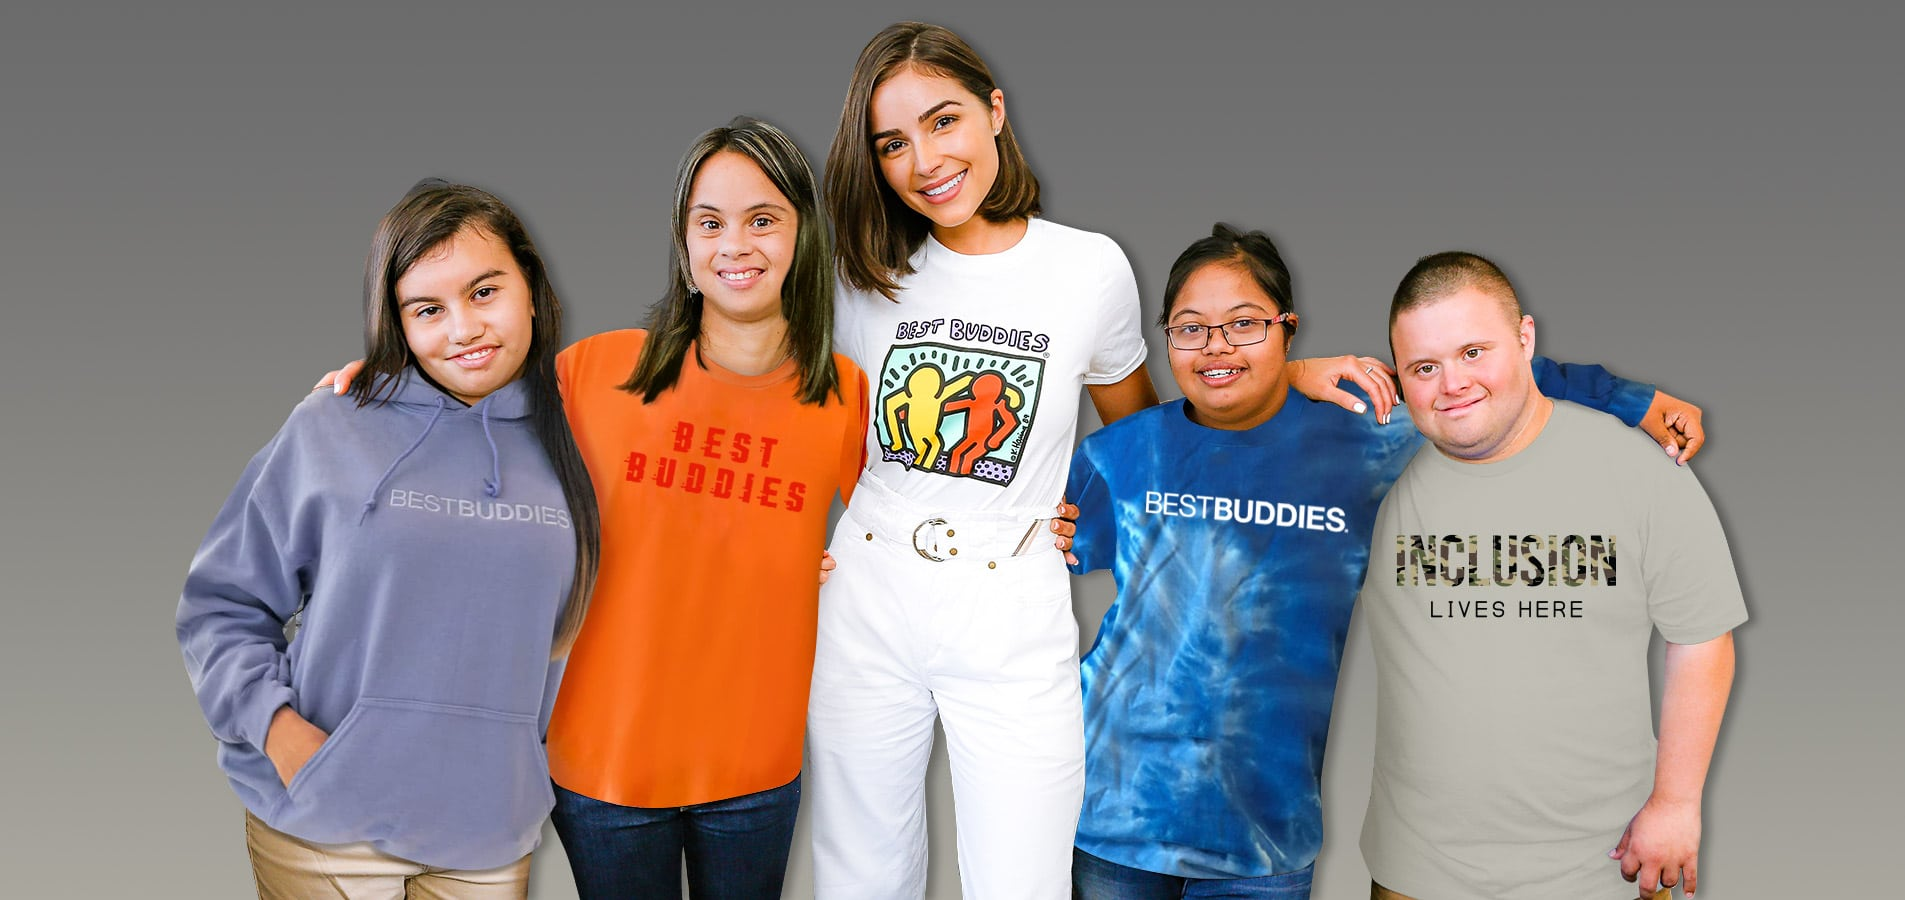 Shop Best Buddies Home Page Banner 7-19